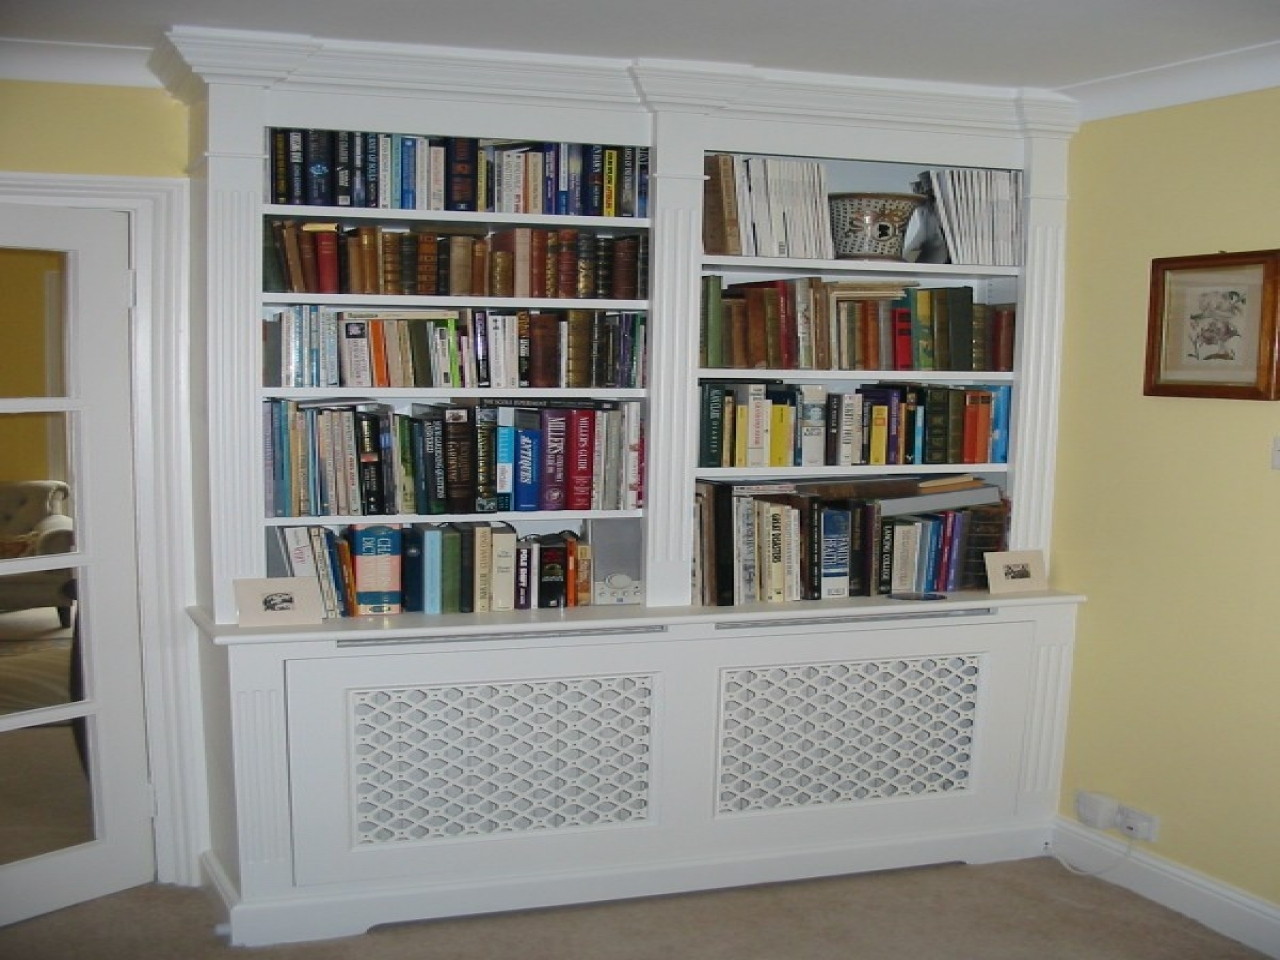 Cupboard Bookcase Radiator Bookcase Cover Over Radiator Cover Regarding Bookcase Radiator Cover (#5 of 15)